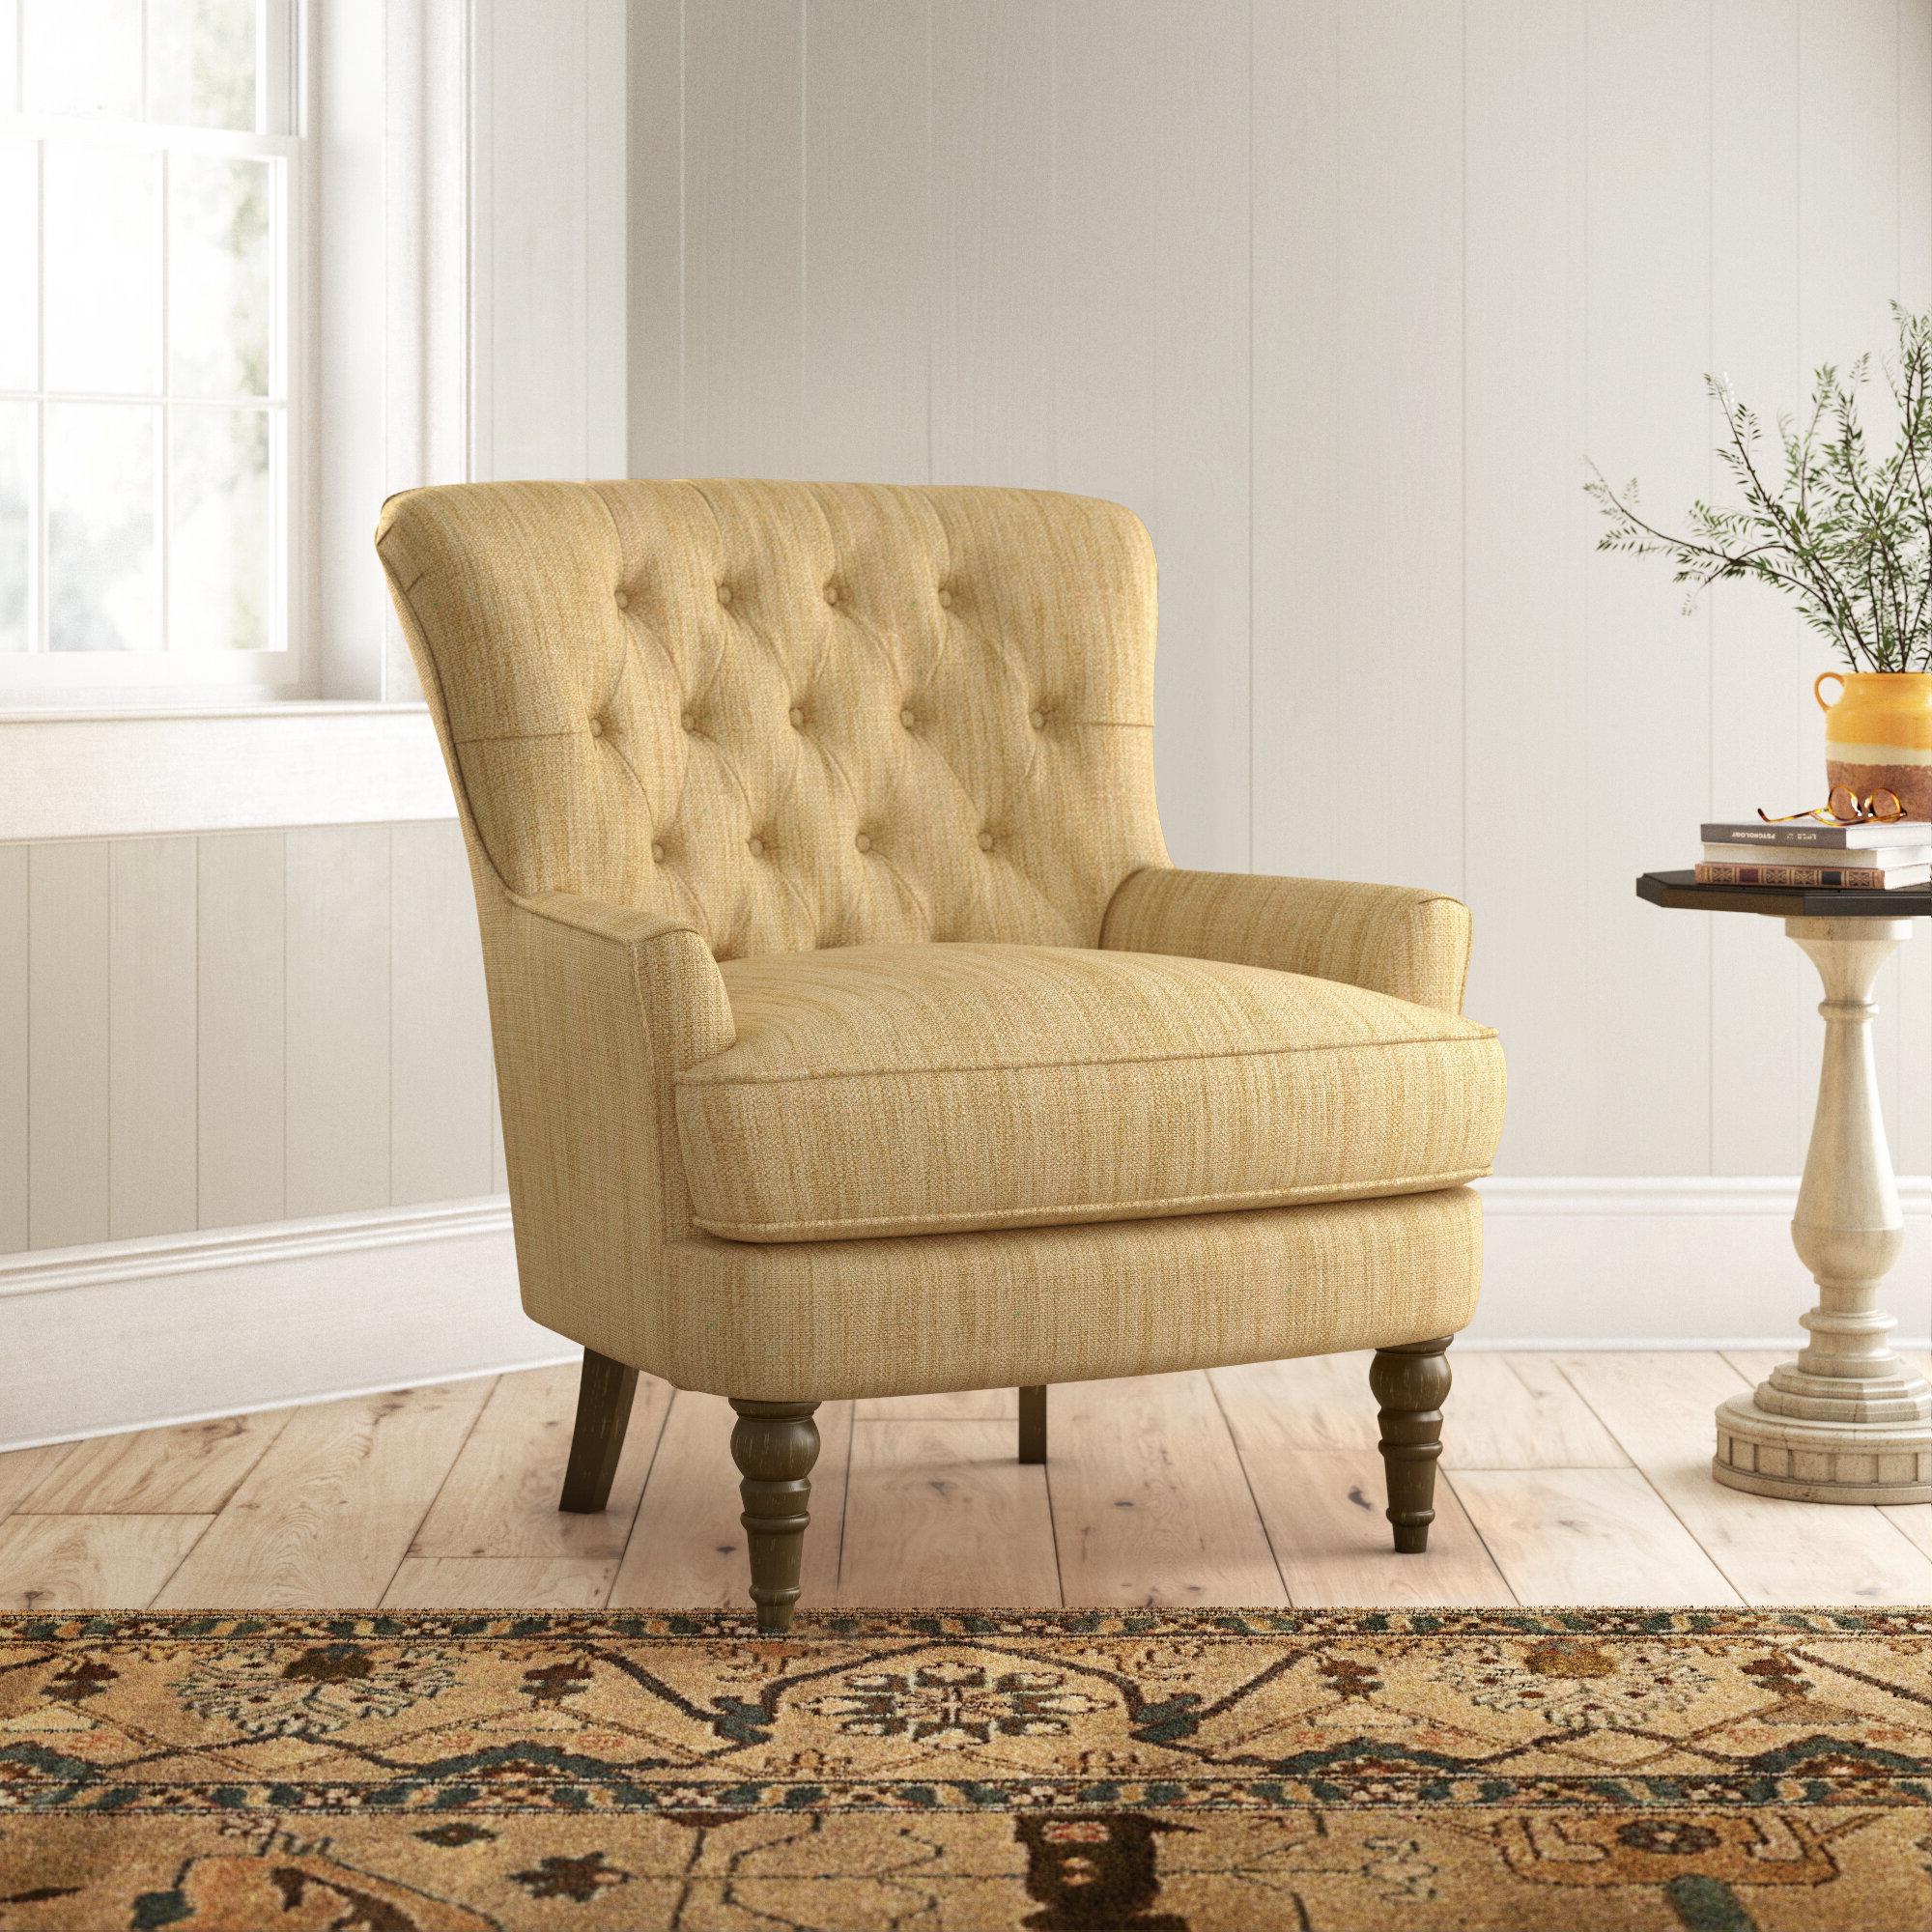 Birch Lane Pertaining To Popular Galesville Tufted Polyester Wingback Chairs (View 9 of 20)